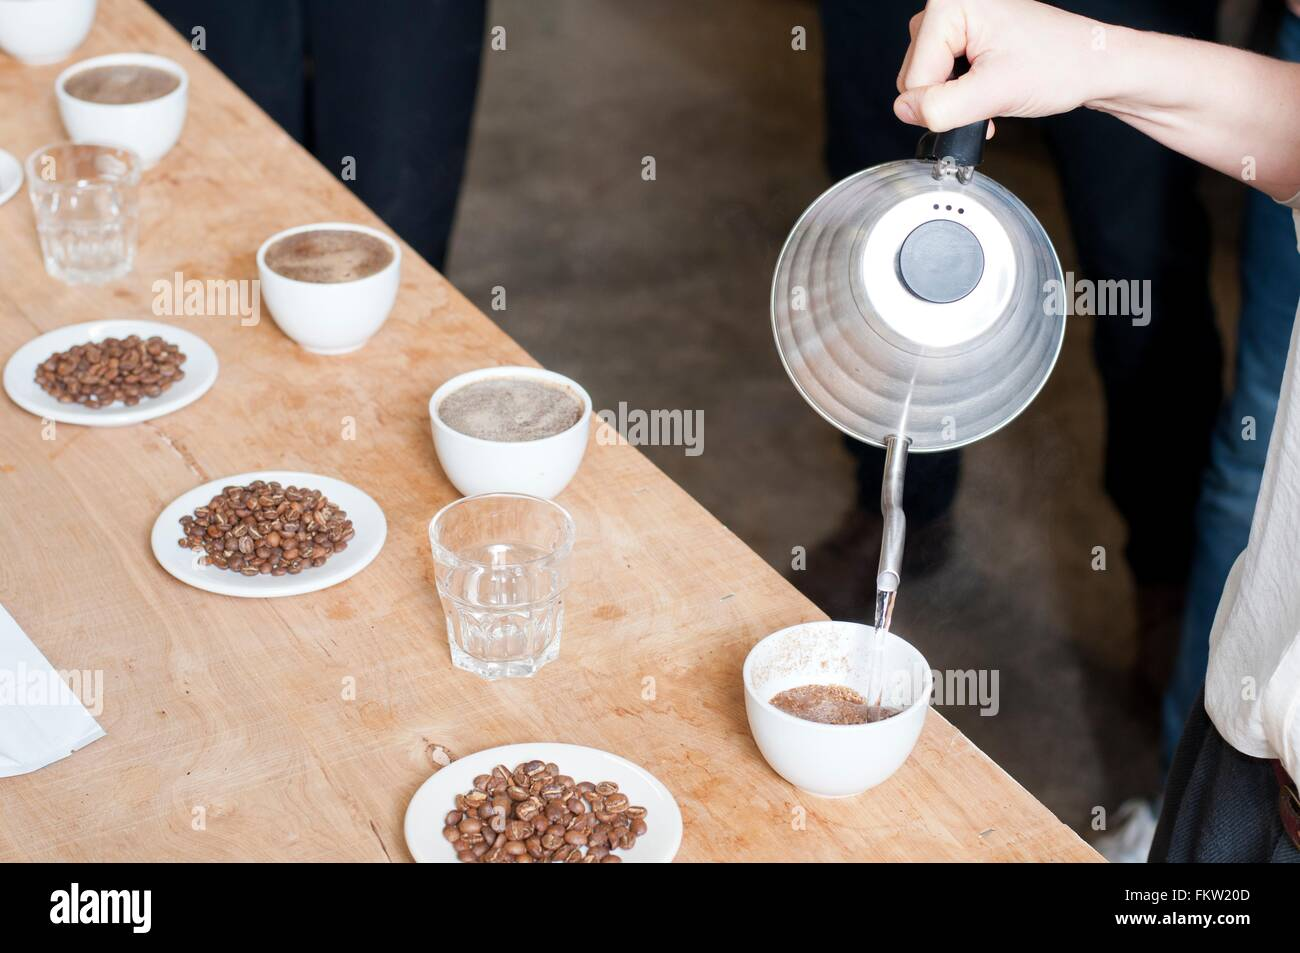 C fee seller pouring hot water into cup   c fee - Stock Image